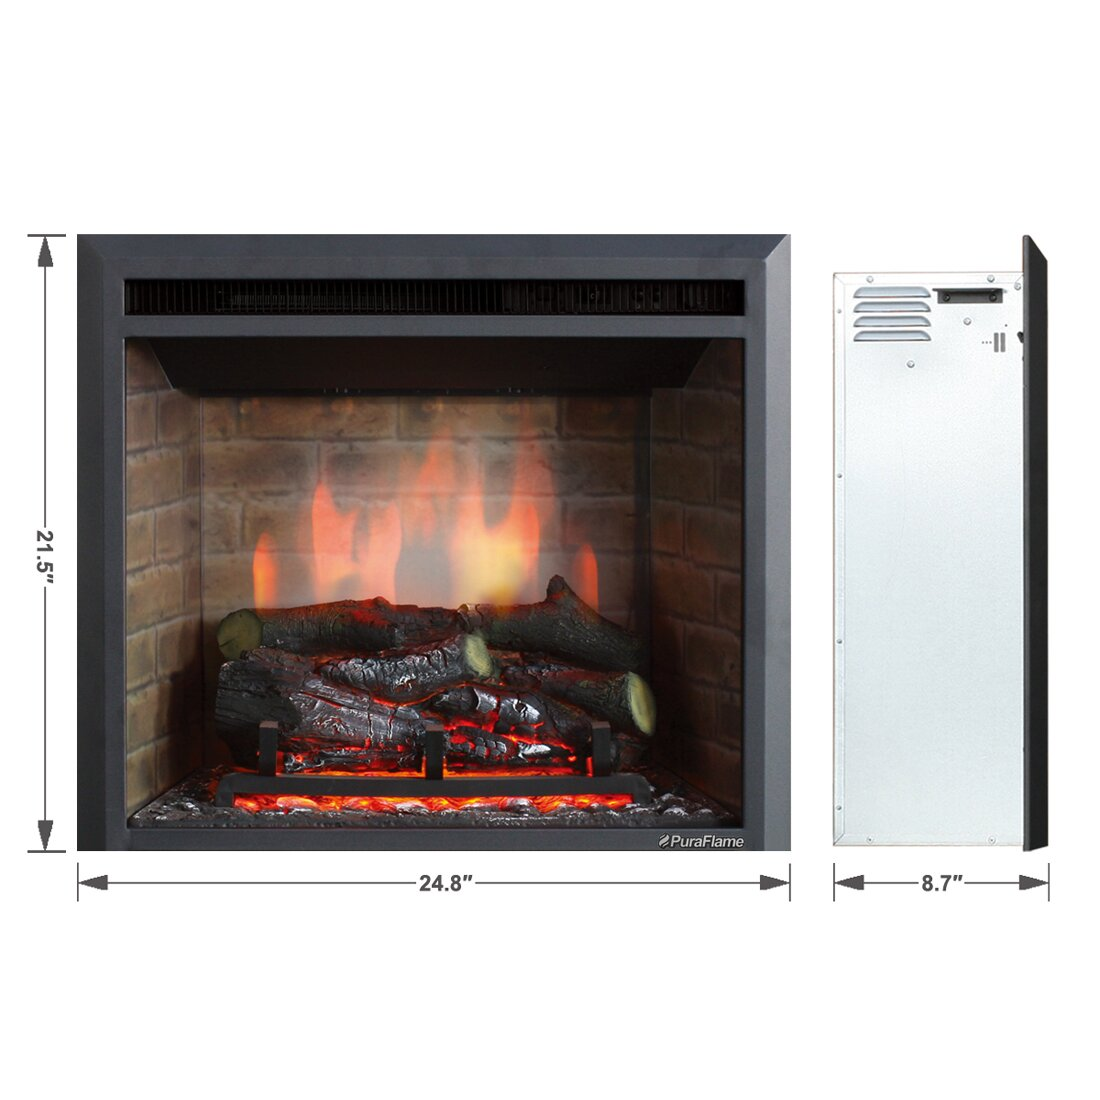 "Puraflame 33"" Black 750/1500W Western Wall Mount Electric Fireplace  Insert - Puraflame 33"